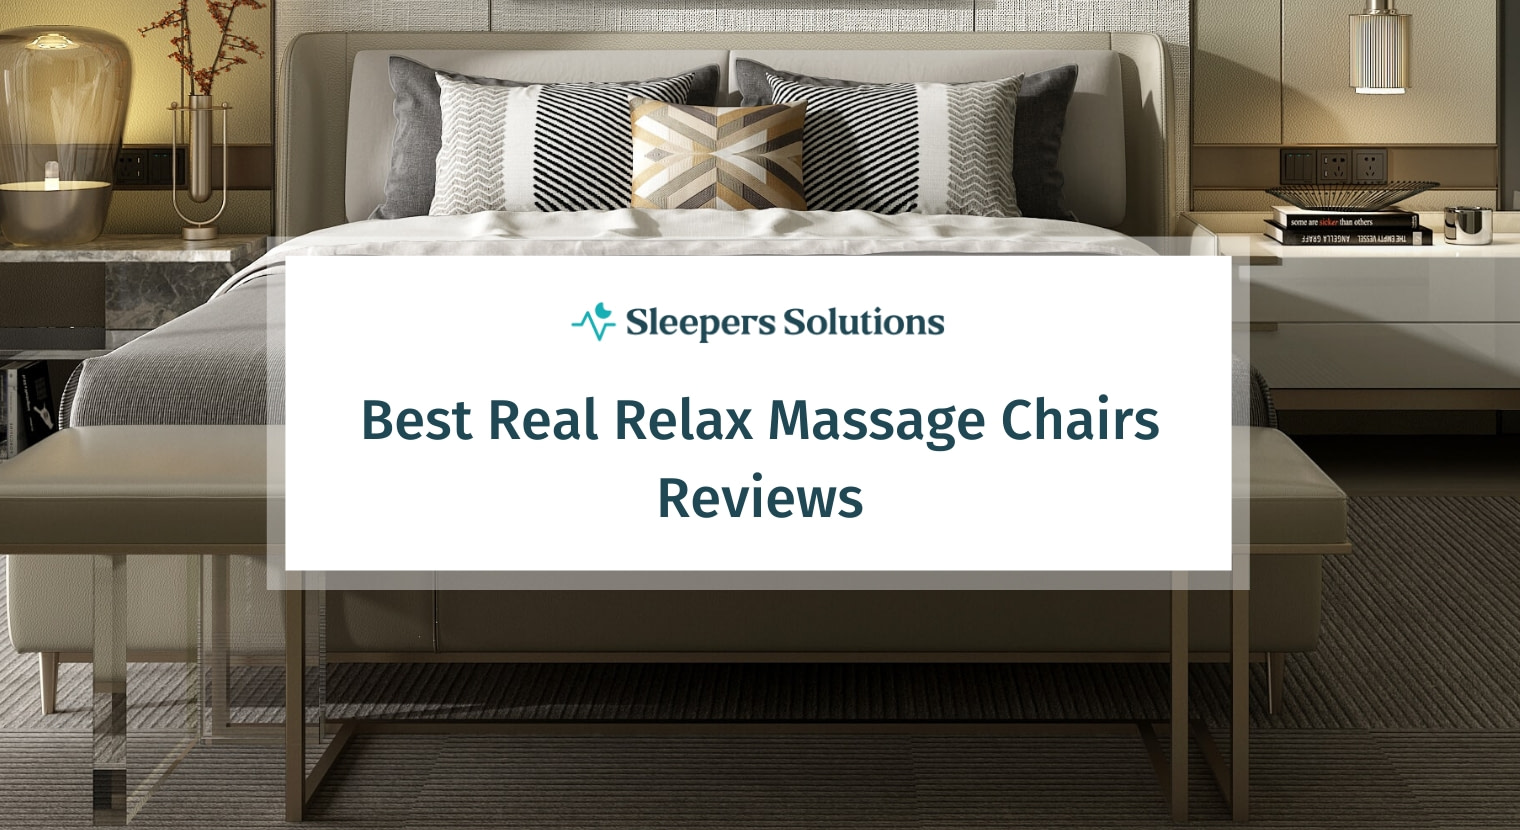 Real Relax Massage Chairs